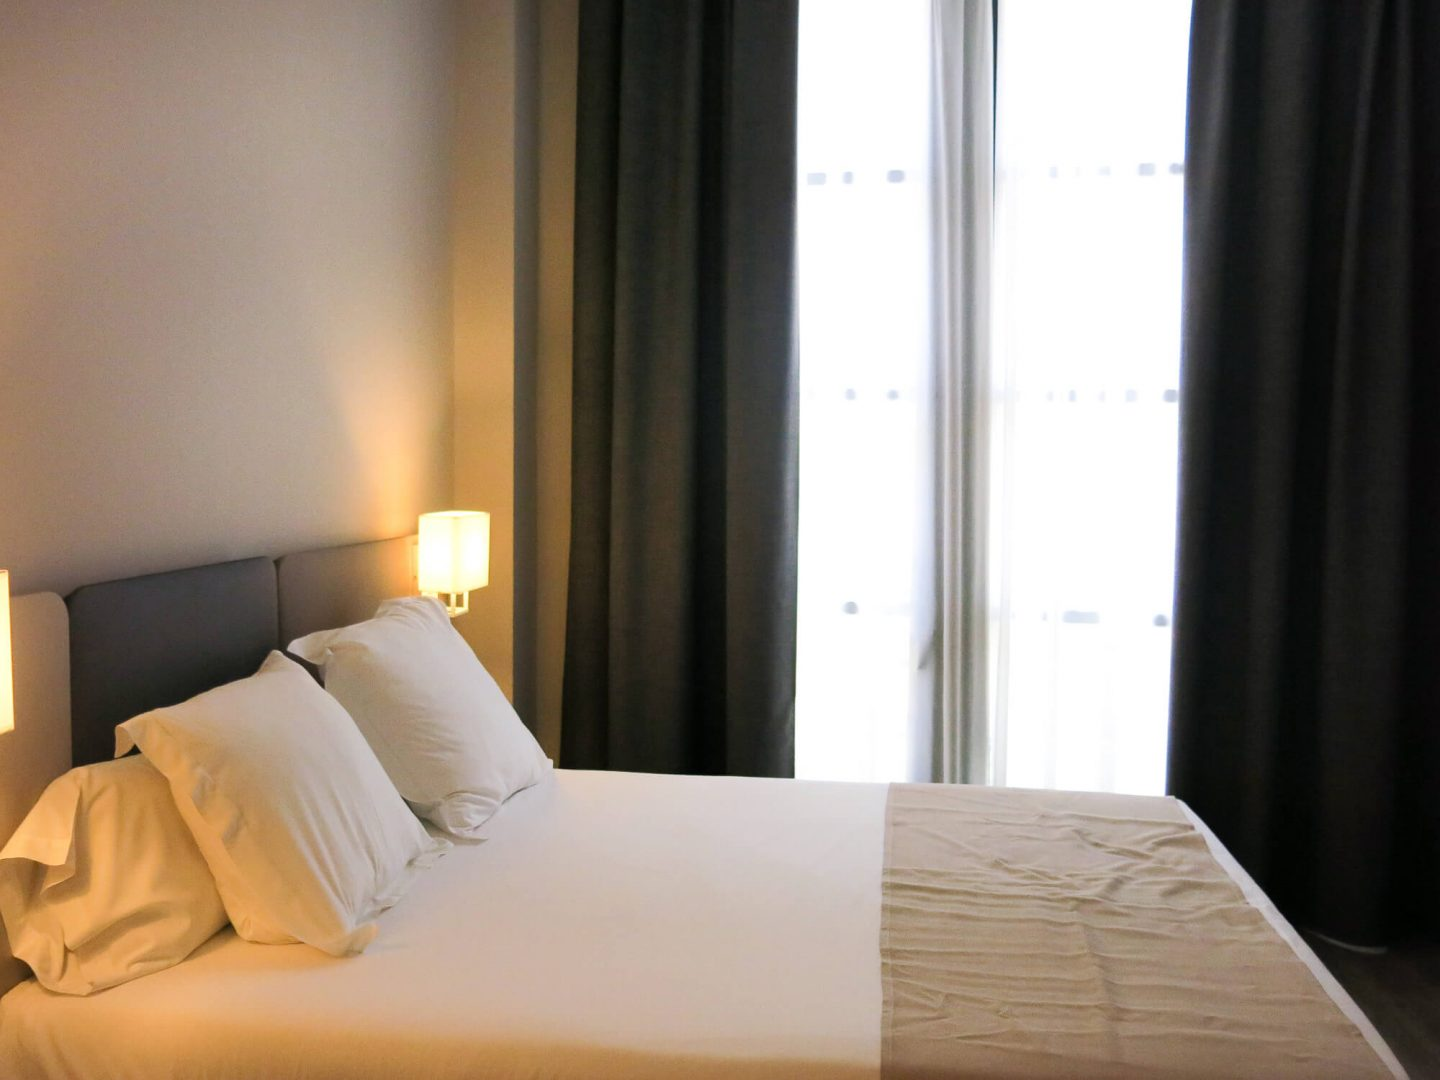 Where to stay in Barcelona, Spain. We loved this hotel in the Gothic Quarter in Barcelona.